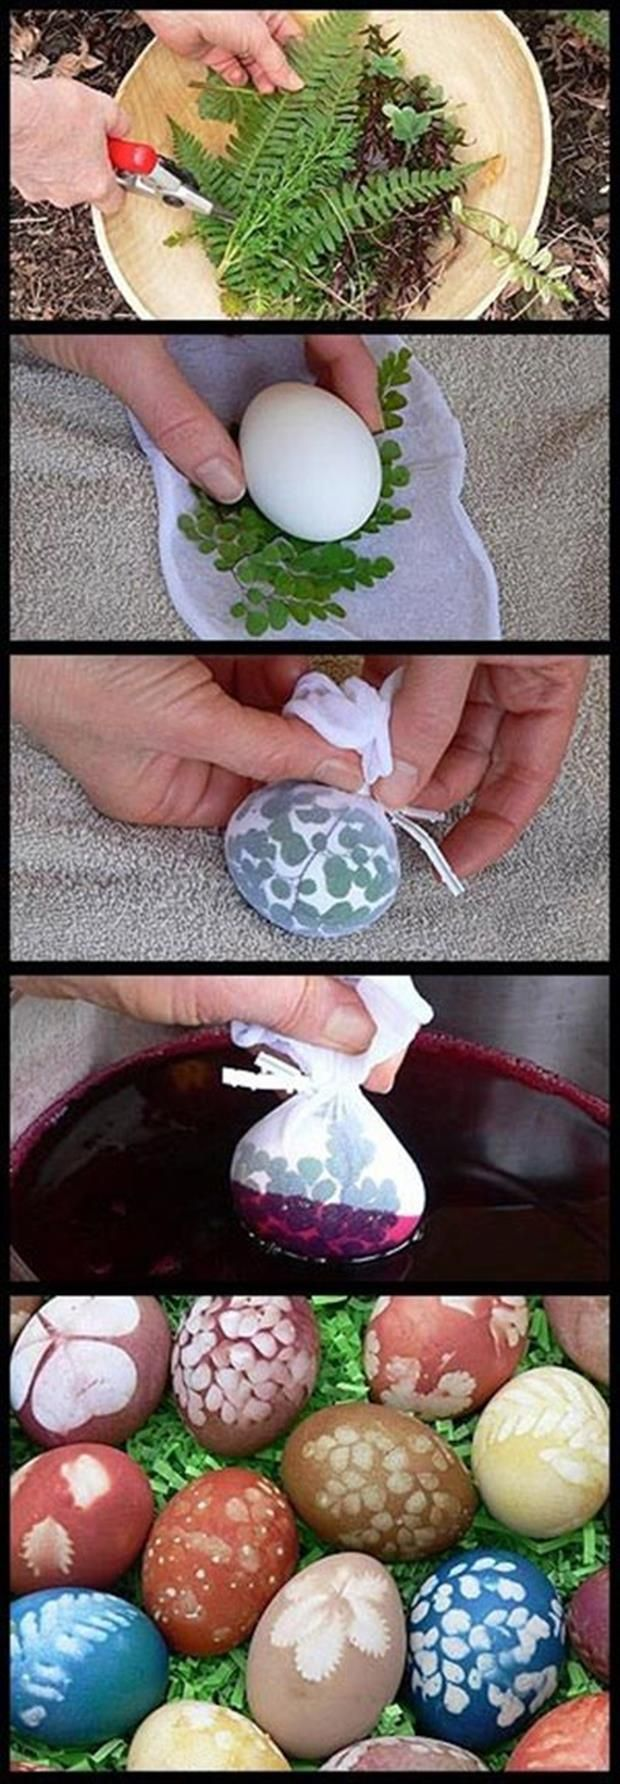 Do it yourself craft ideas of the week 52 pics resacol do it yourself craft ideas of the week 52 pics solutioingenieria Images